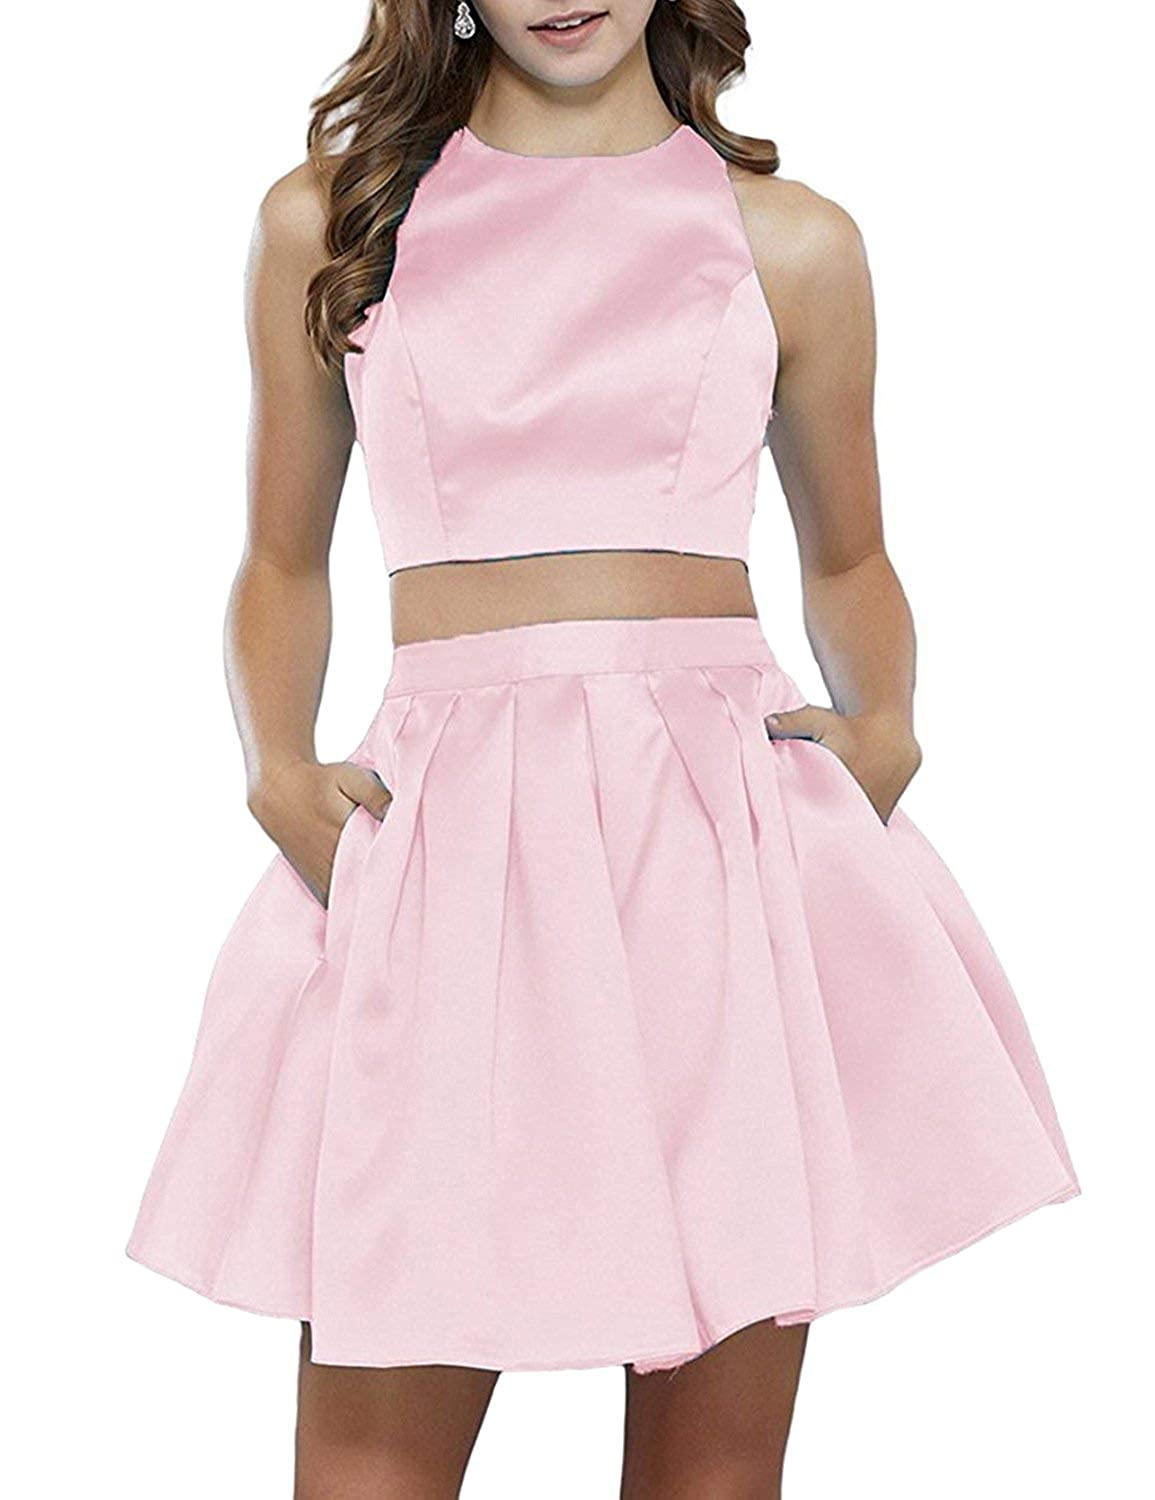 e0e4ba5385 ... ANFF Women s Two Piece Homecoming Dresses Short Prom Party Dresses  Pockets. Wholesale Price 59.99 -  69.99. Features  Two Piece